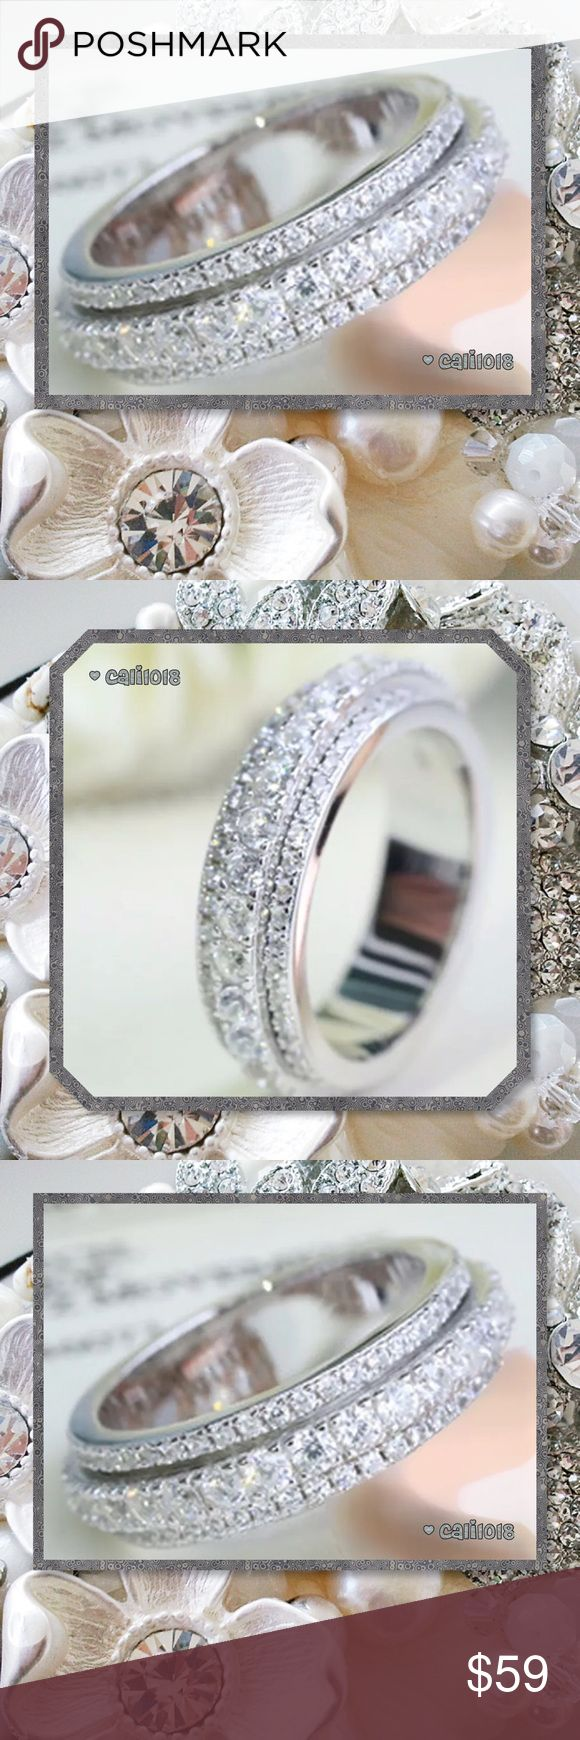 JUST IN Unique Design Eternity Band 925 Silver New Double Layer New Design Eternity Wedding Band Stone Type: White Sapphires Metal Type: 925 Silver Sizes Avail: 6, 7, 8, 9 10 Amazing design; Very Sparkly PRICE FIRM UNLESS BUNDLED ⭐️⭐️LOWBALL AND TRADE OFFERS WILL BE IGNORED (SORRY)⭐️⭐️ Glam Squad 2 You Jewelry Rings